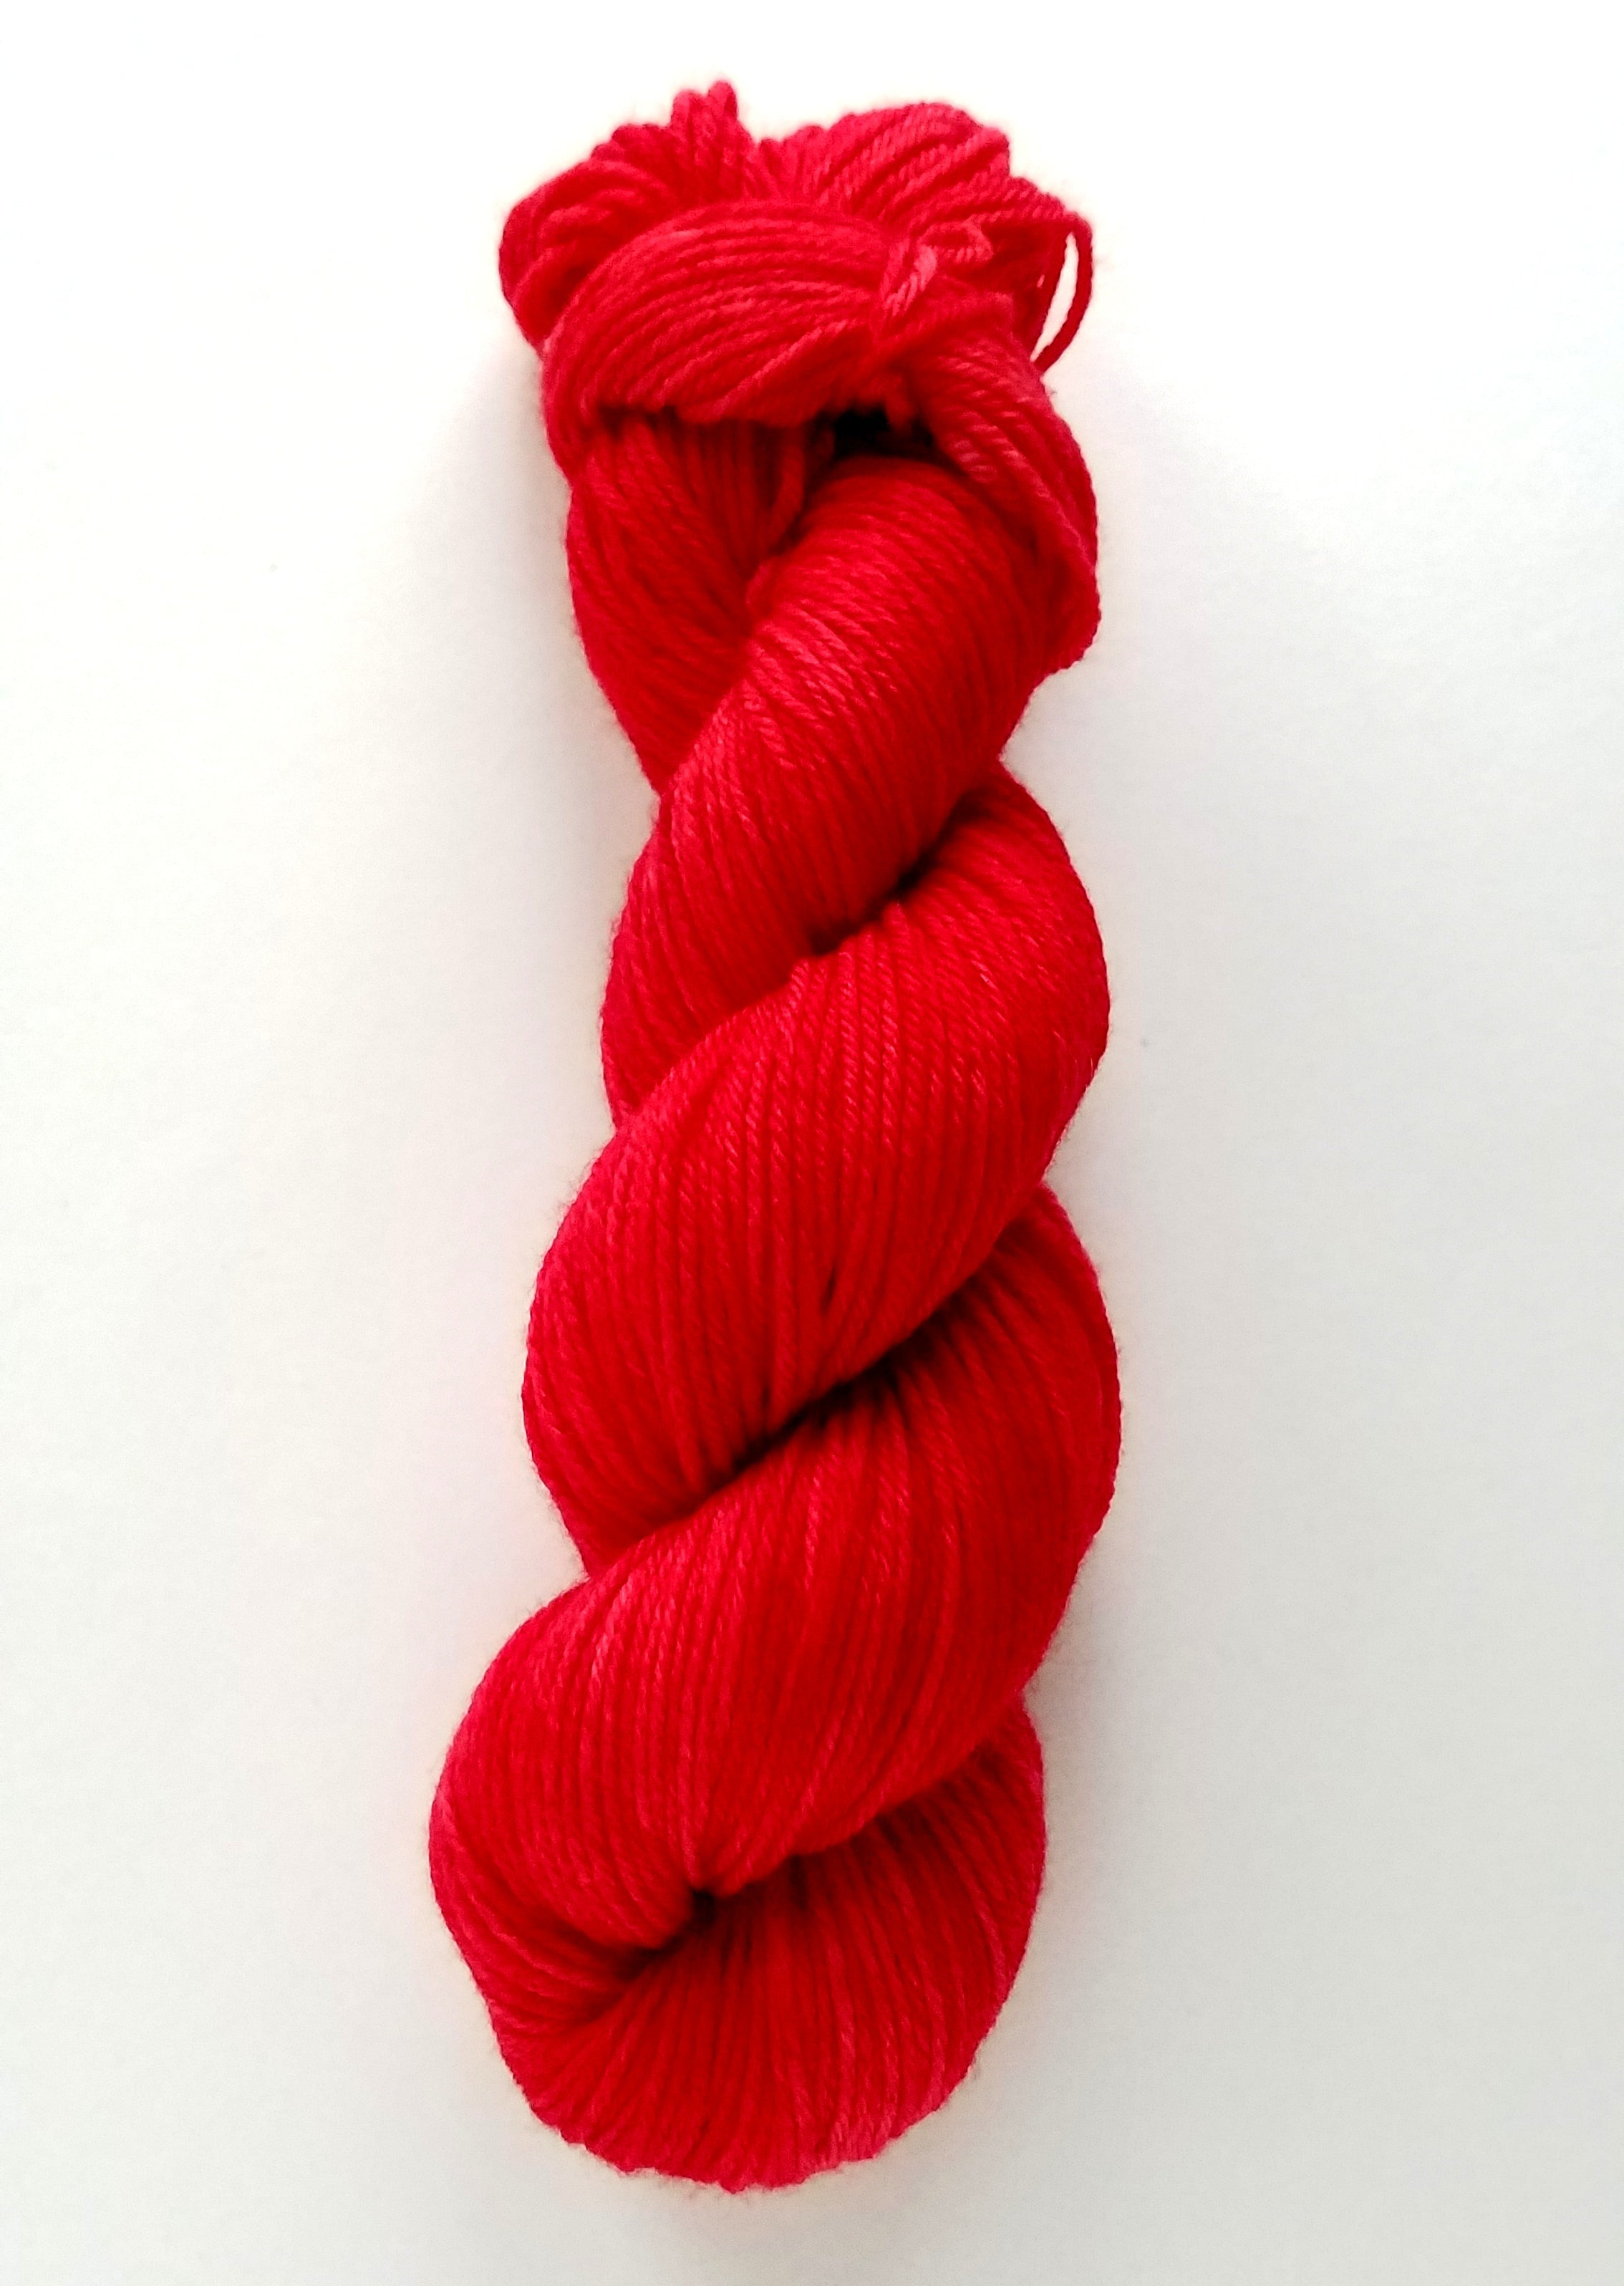 Rosa Hand Dyed Yarn Semi Solid Pink Red